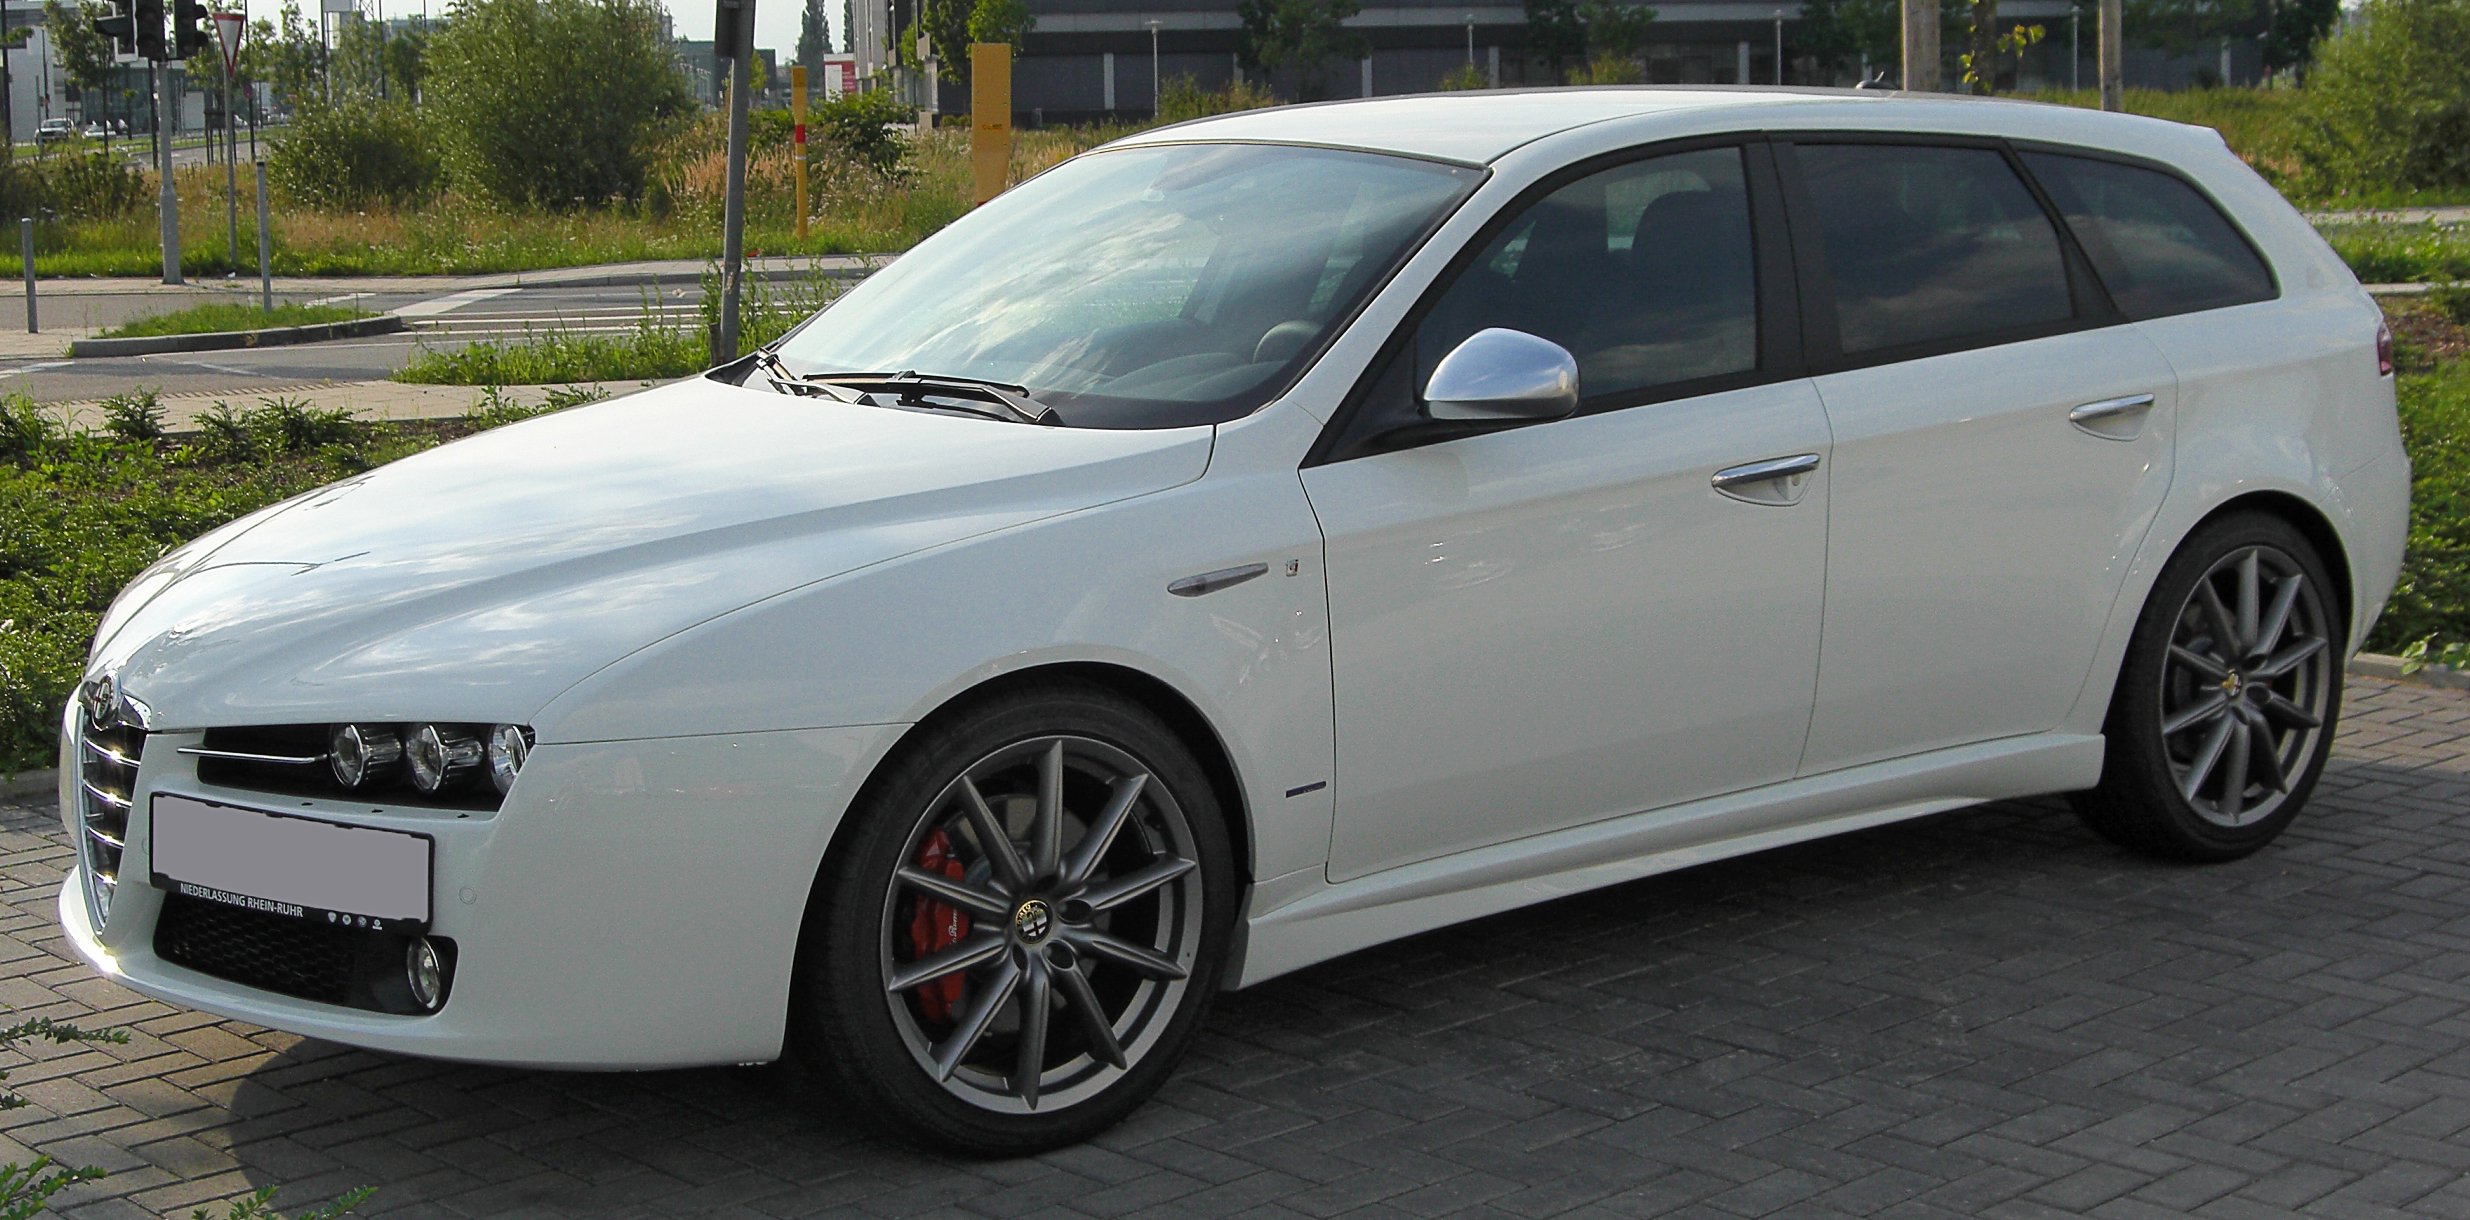 file alfa romeo 159 ti sportwagon front. Black Bedroom Furniture Sets. Home Design Ideas